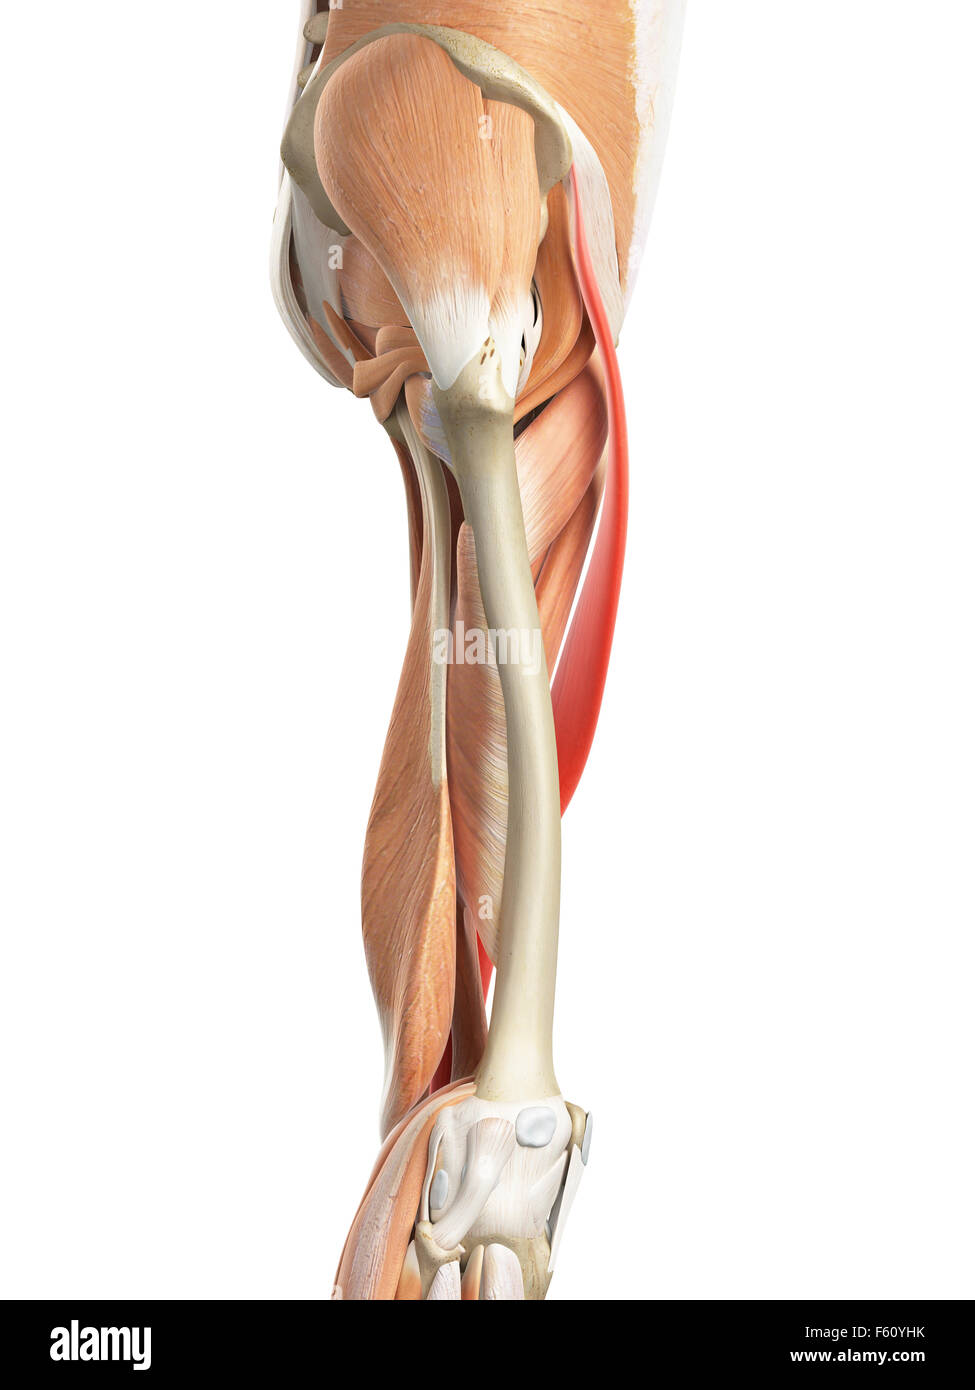 Sartorius Muscle Stock Photos Sartorius Muscle Stock Images Alamy